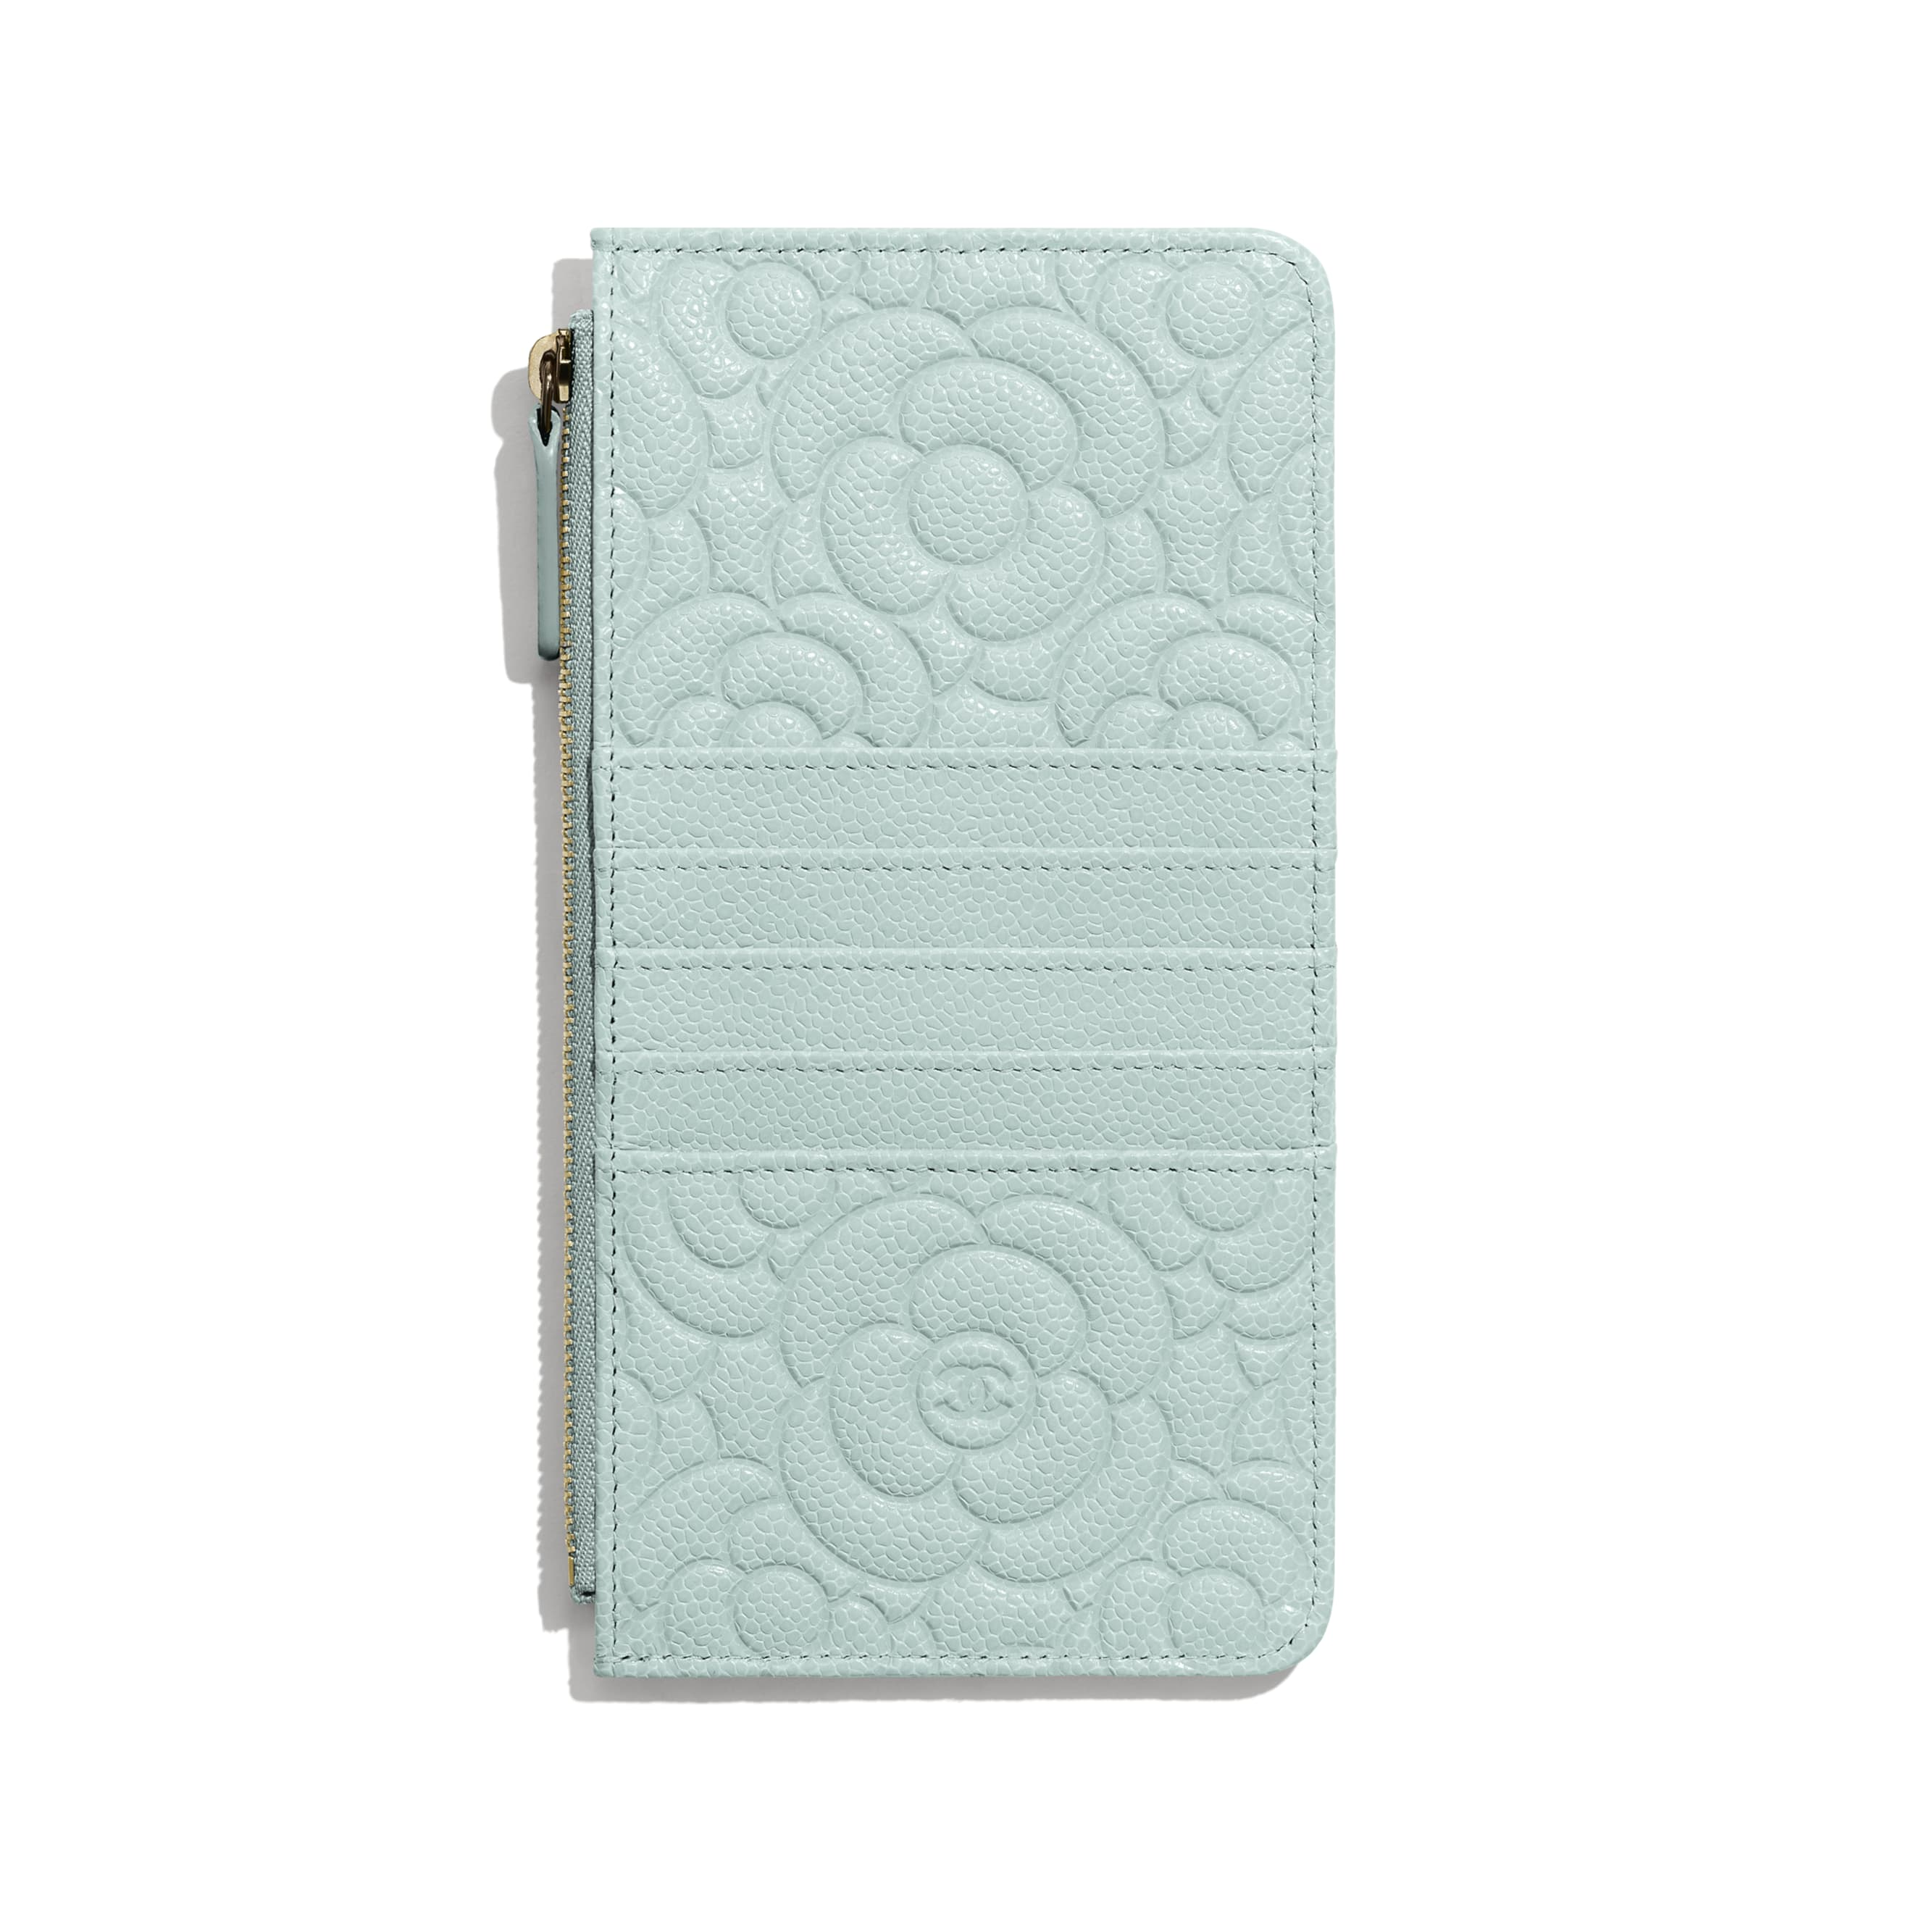 Phone & Card Holder - Light Blue - Grained Shiny Calfskin & Gold-Tone Metal - Alternative view - see standard sized version